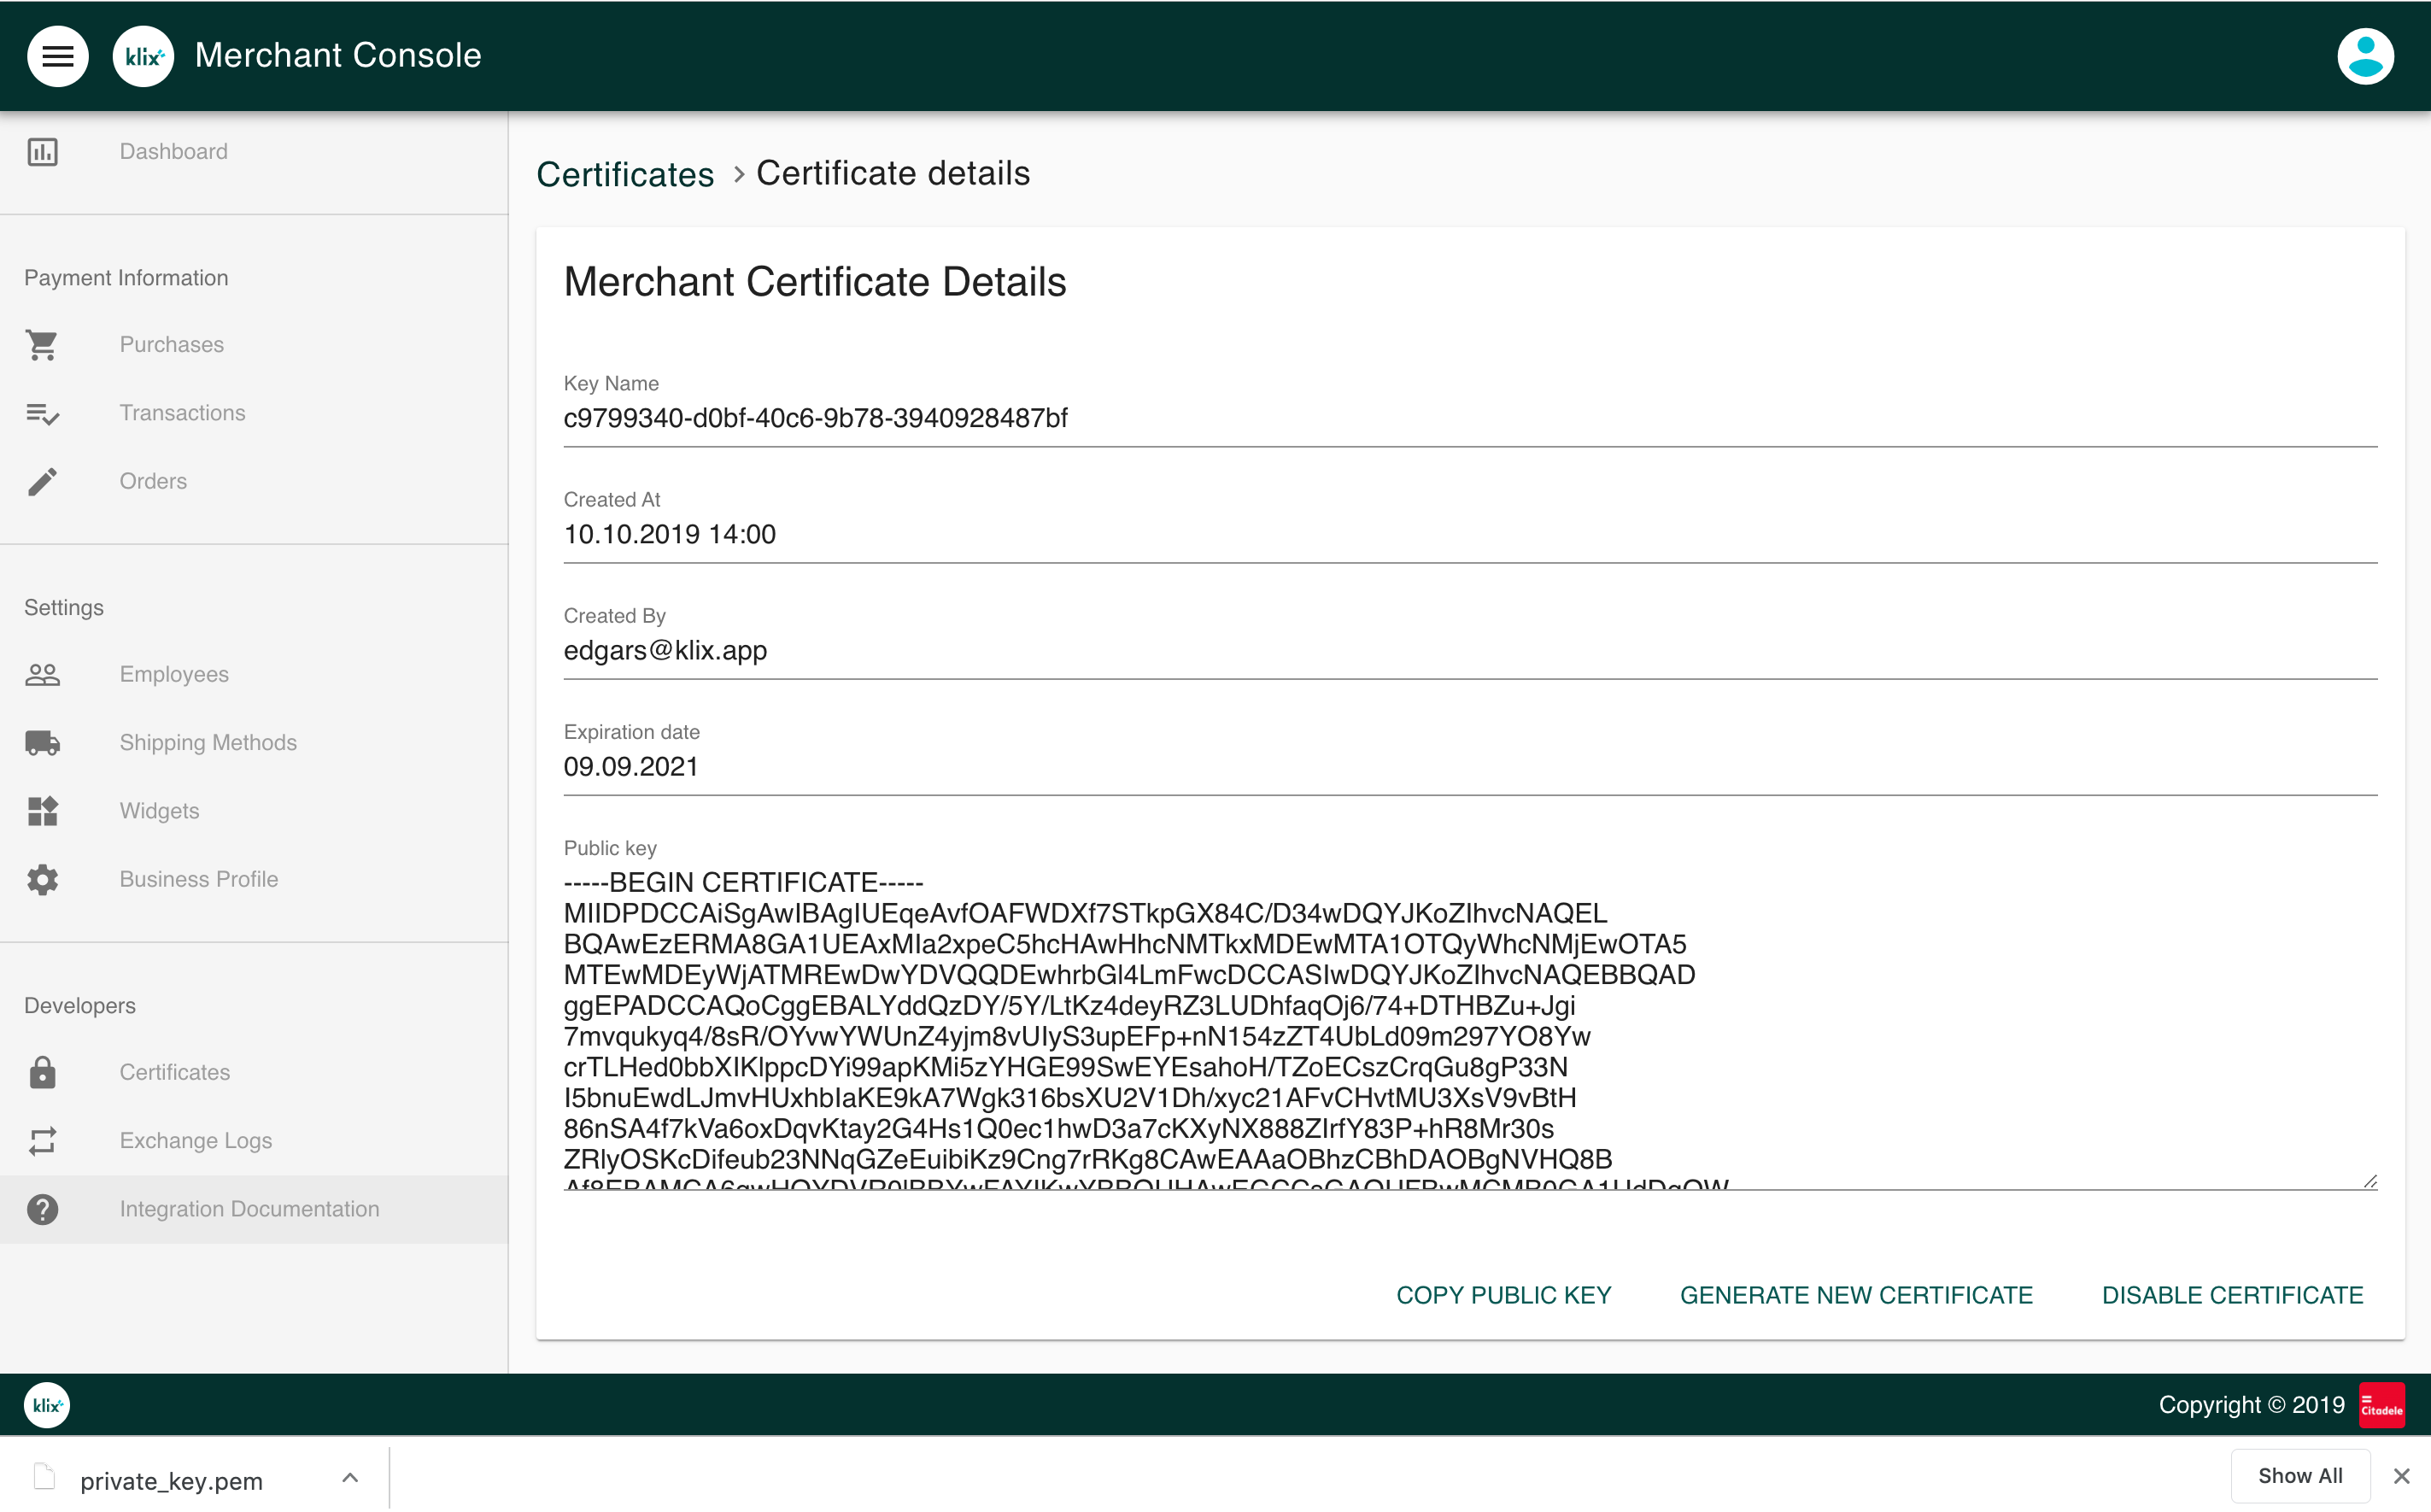 Create new merchant certificate